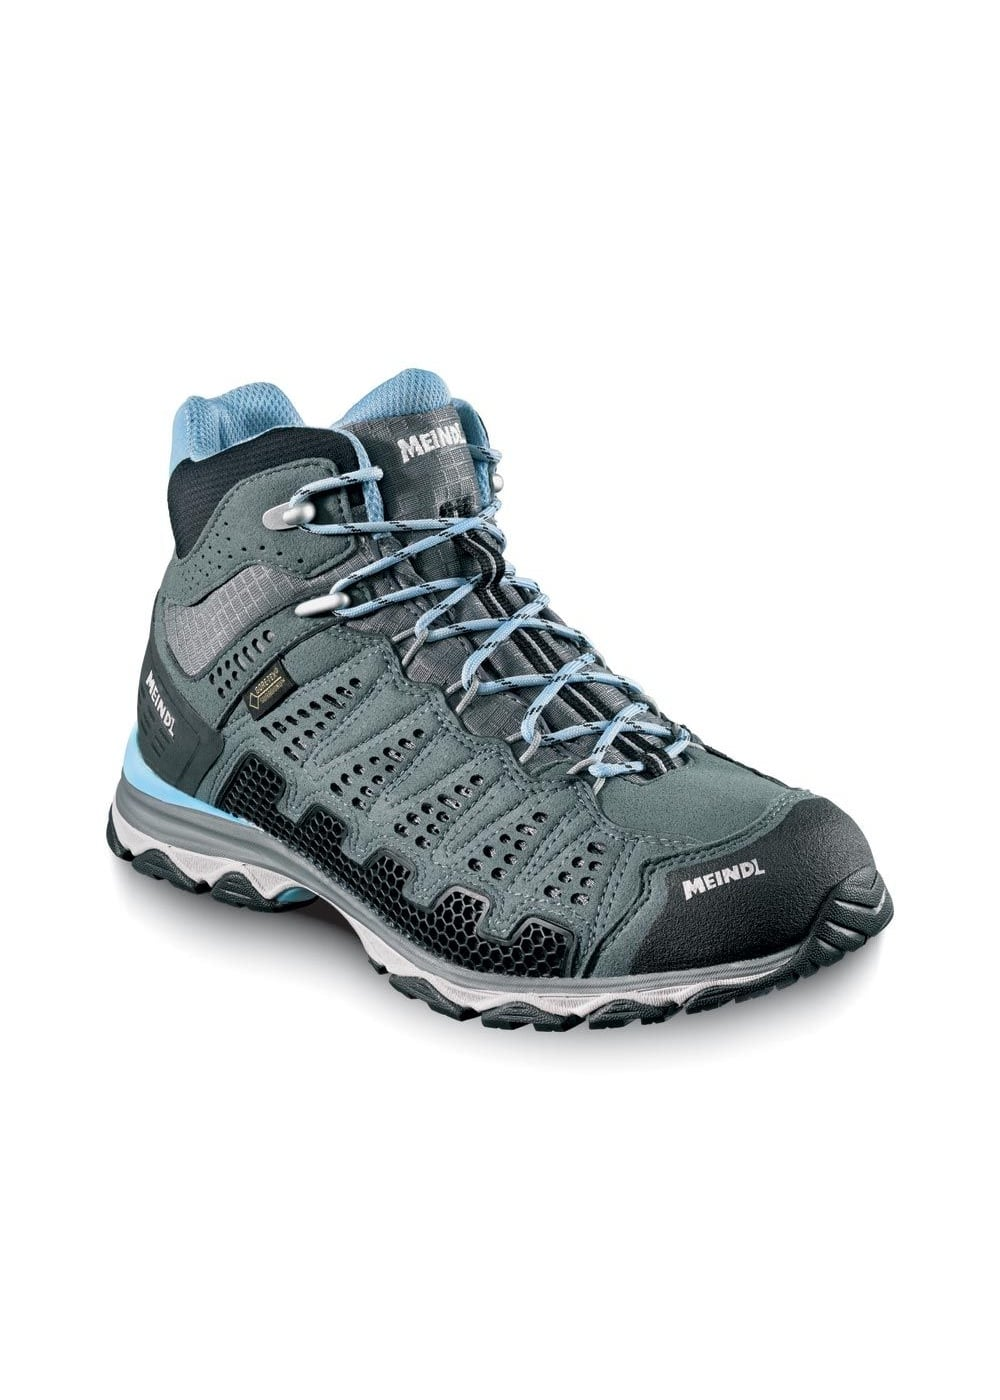 Meindl X-SO 70 Lady Mid GTX Boots  Large Image